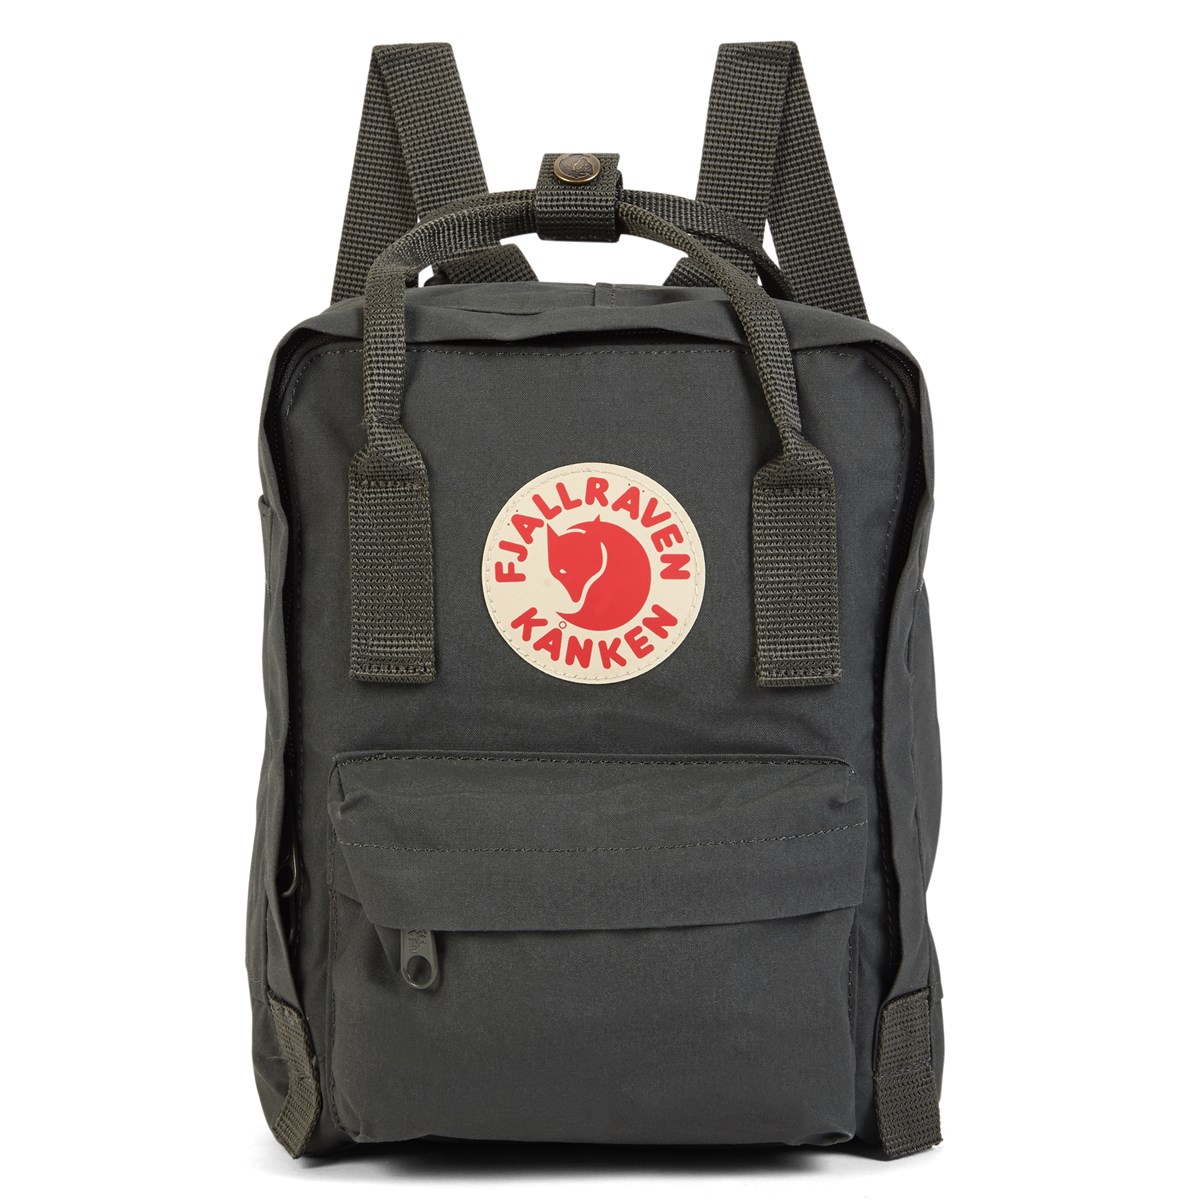 b59b8f1f1a2 Kanken Mini Forest Green Backpack. Previous. default view · ALT1 · ALT2